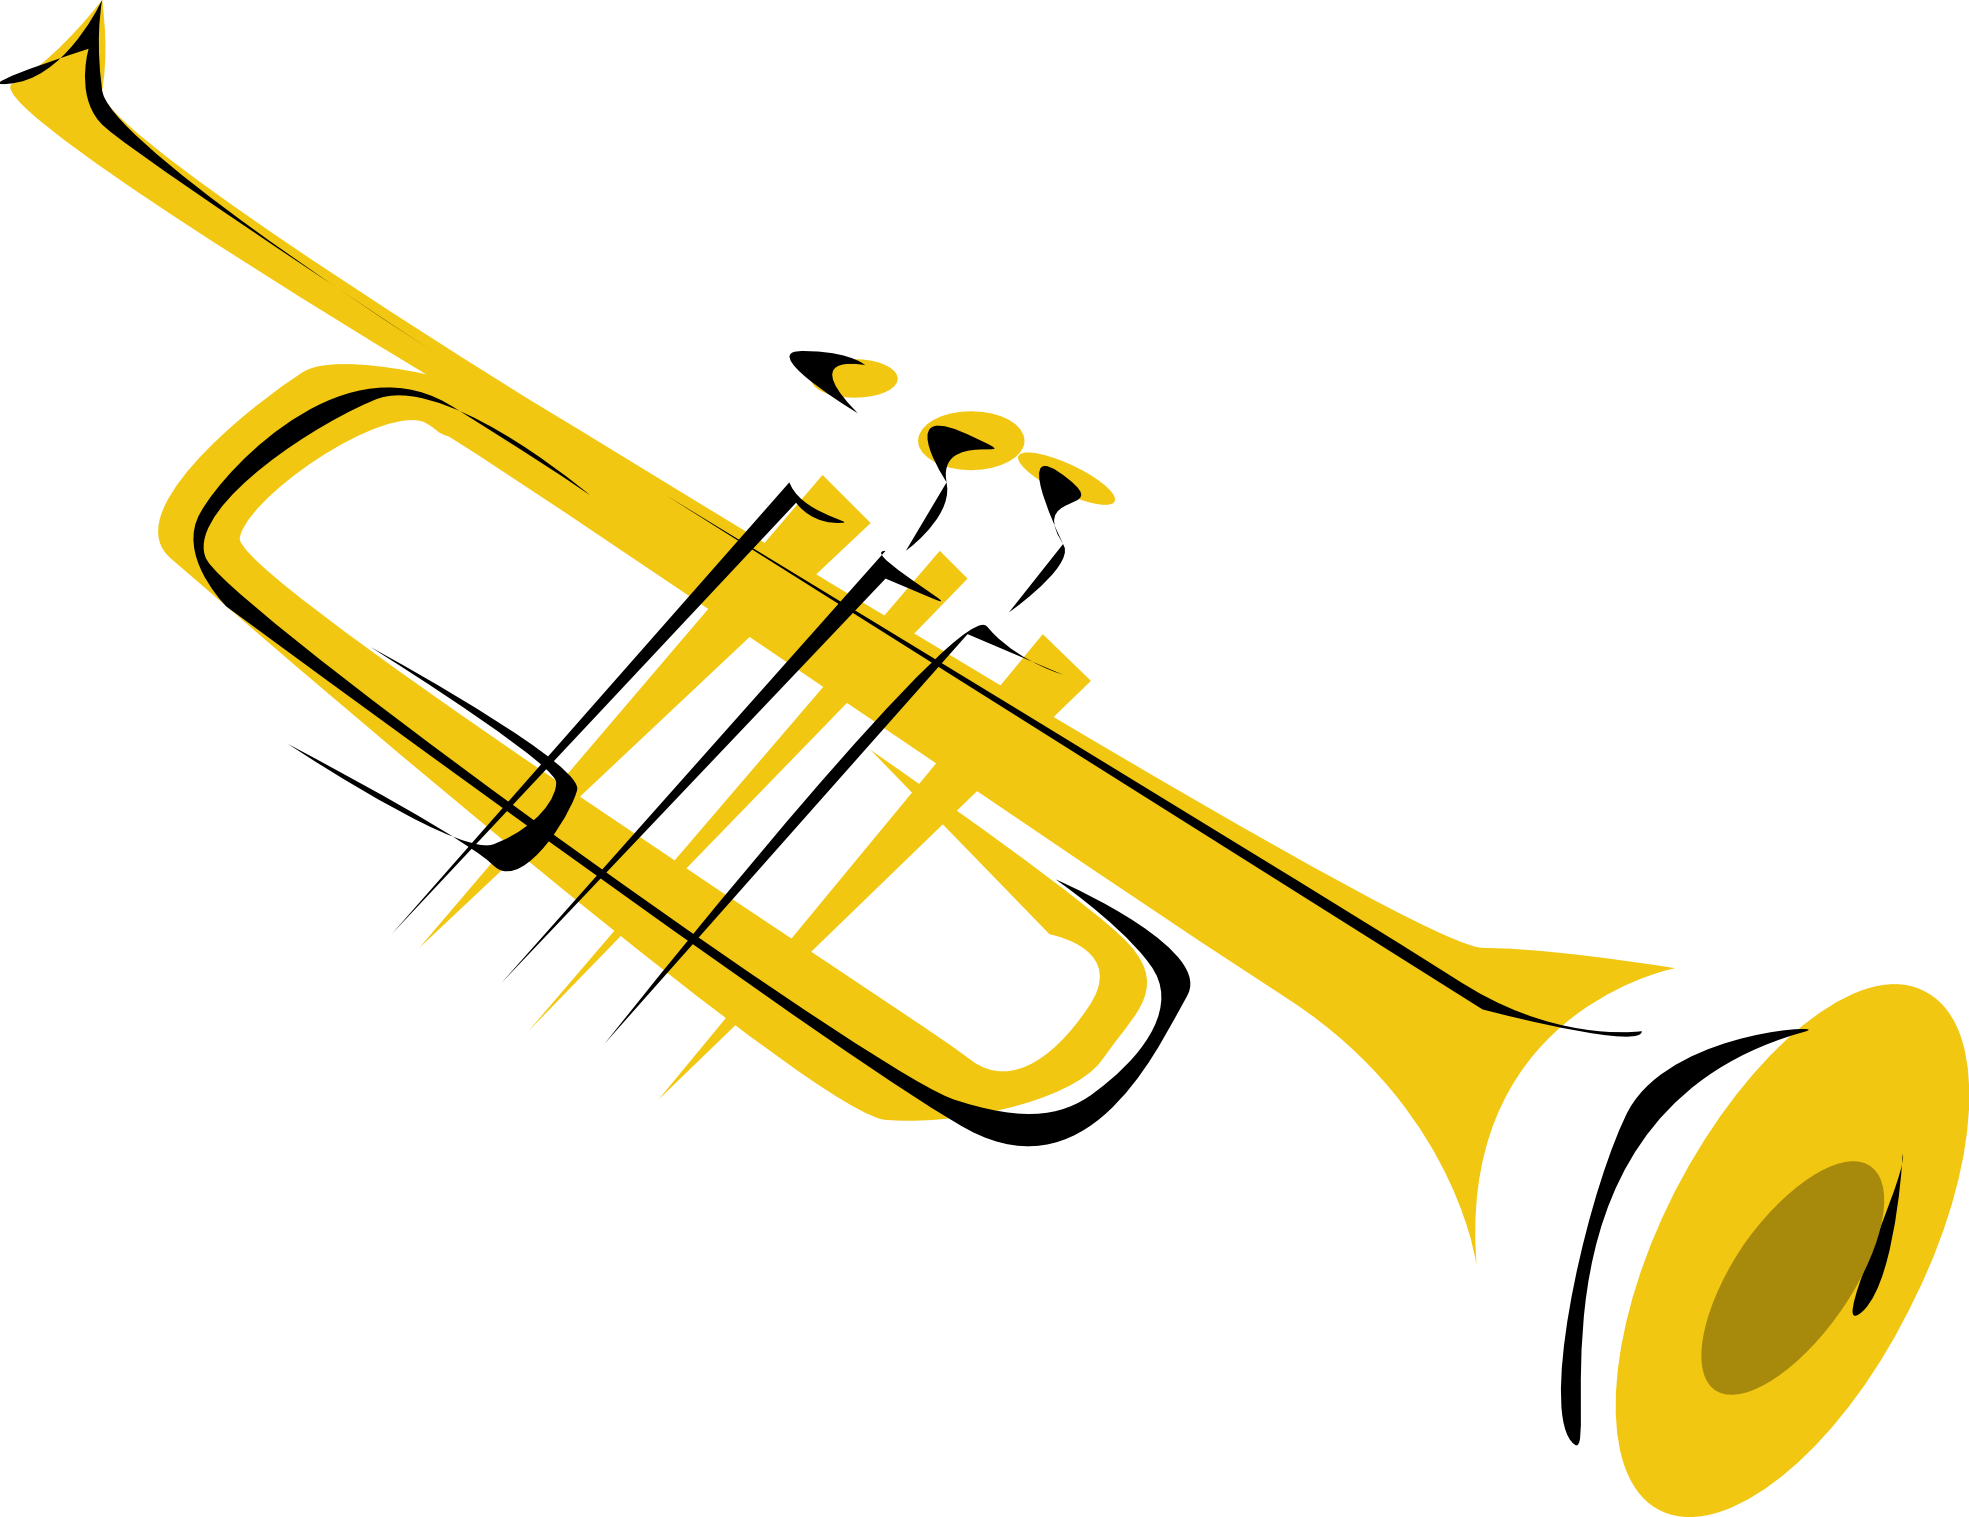 Trumpet clipart for preschool vector download Free Trumpet Images, Download Free Clip Art, Free Clip Art on ... vector download